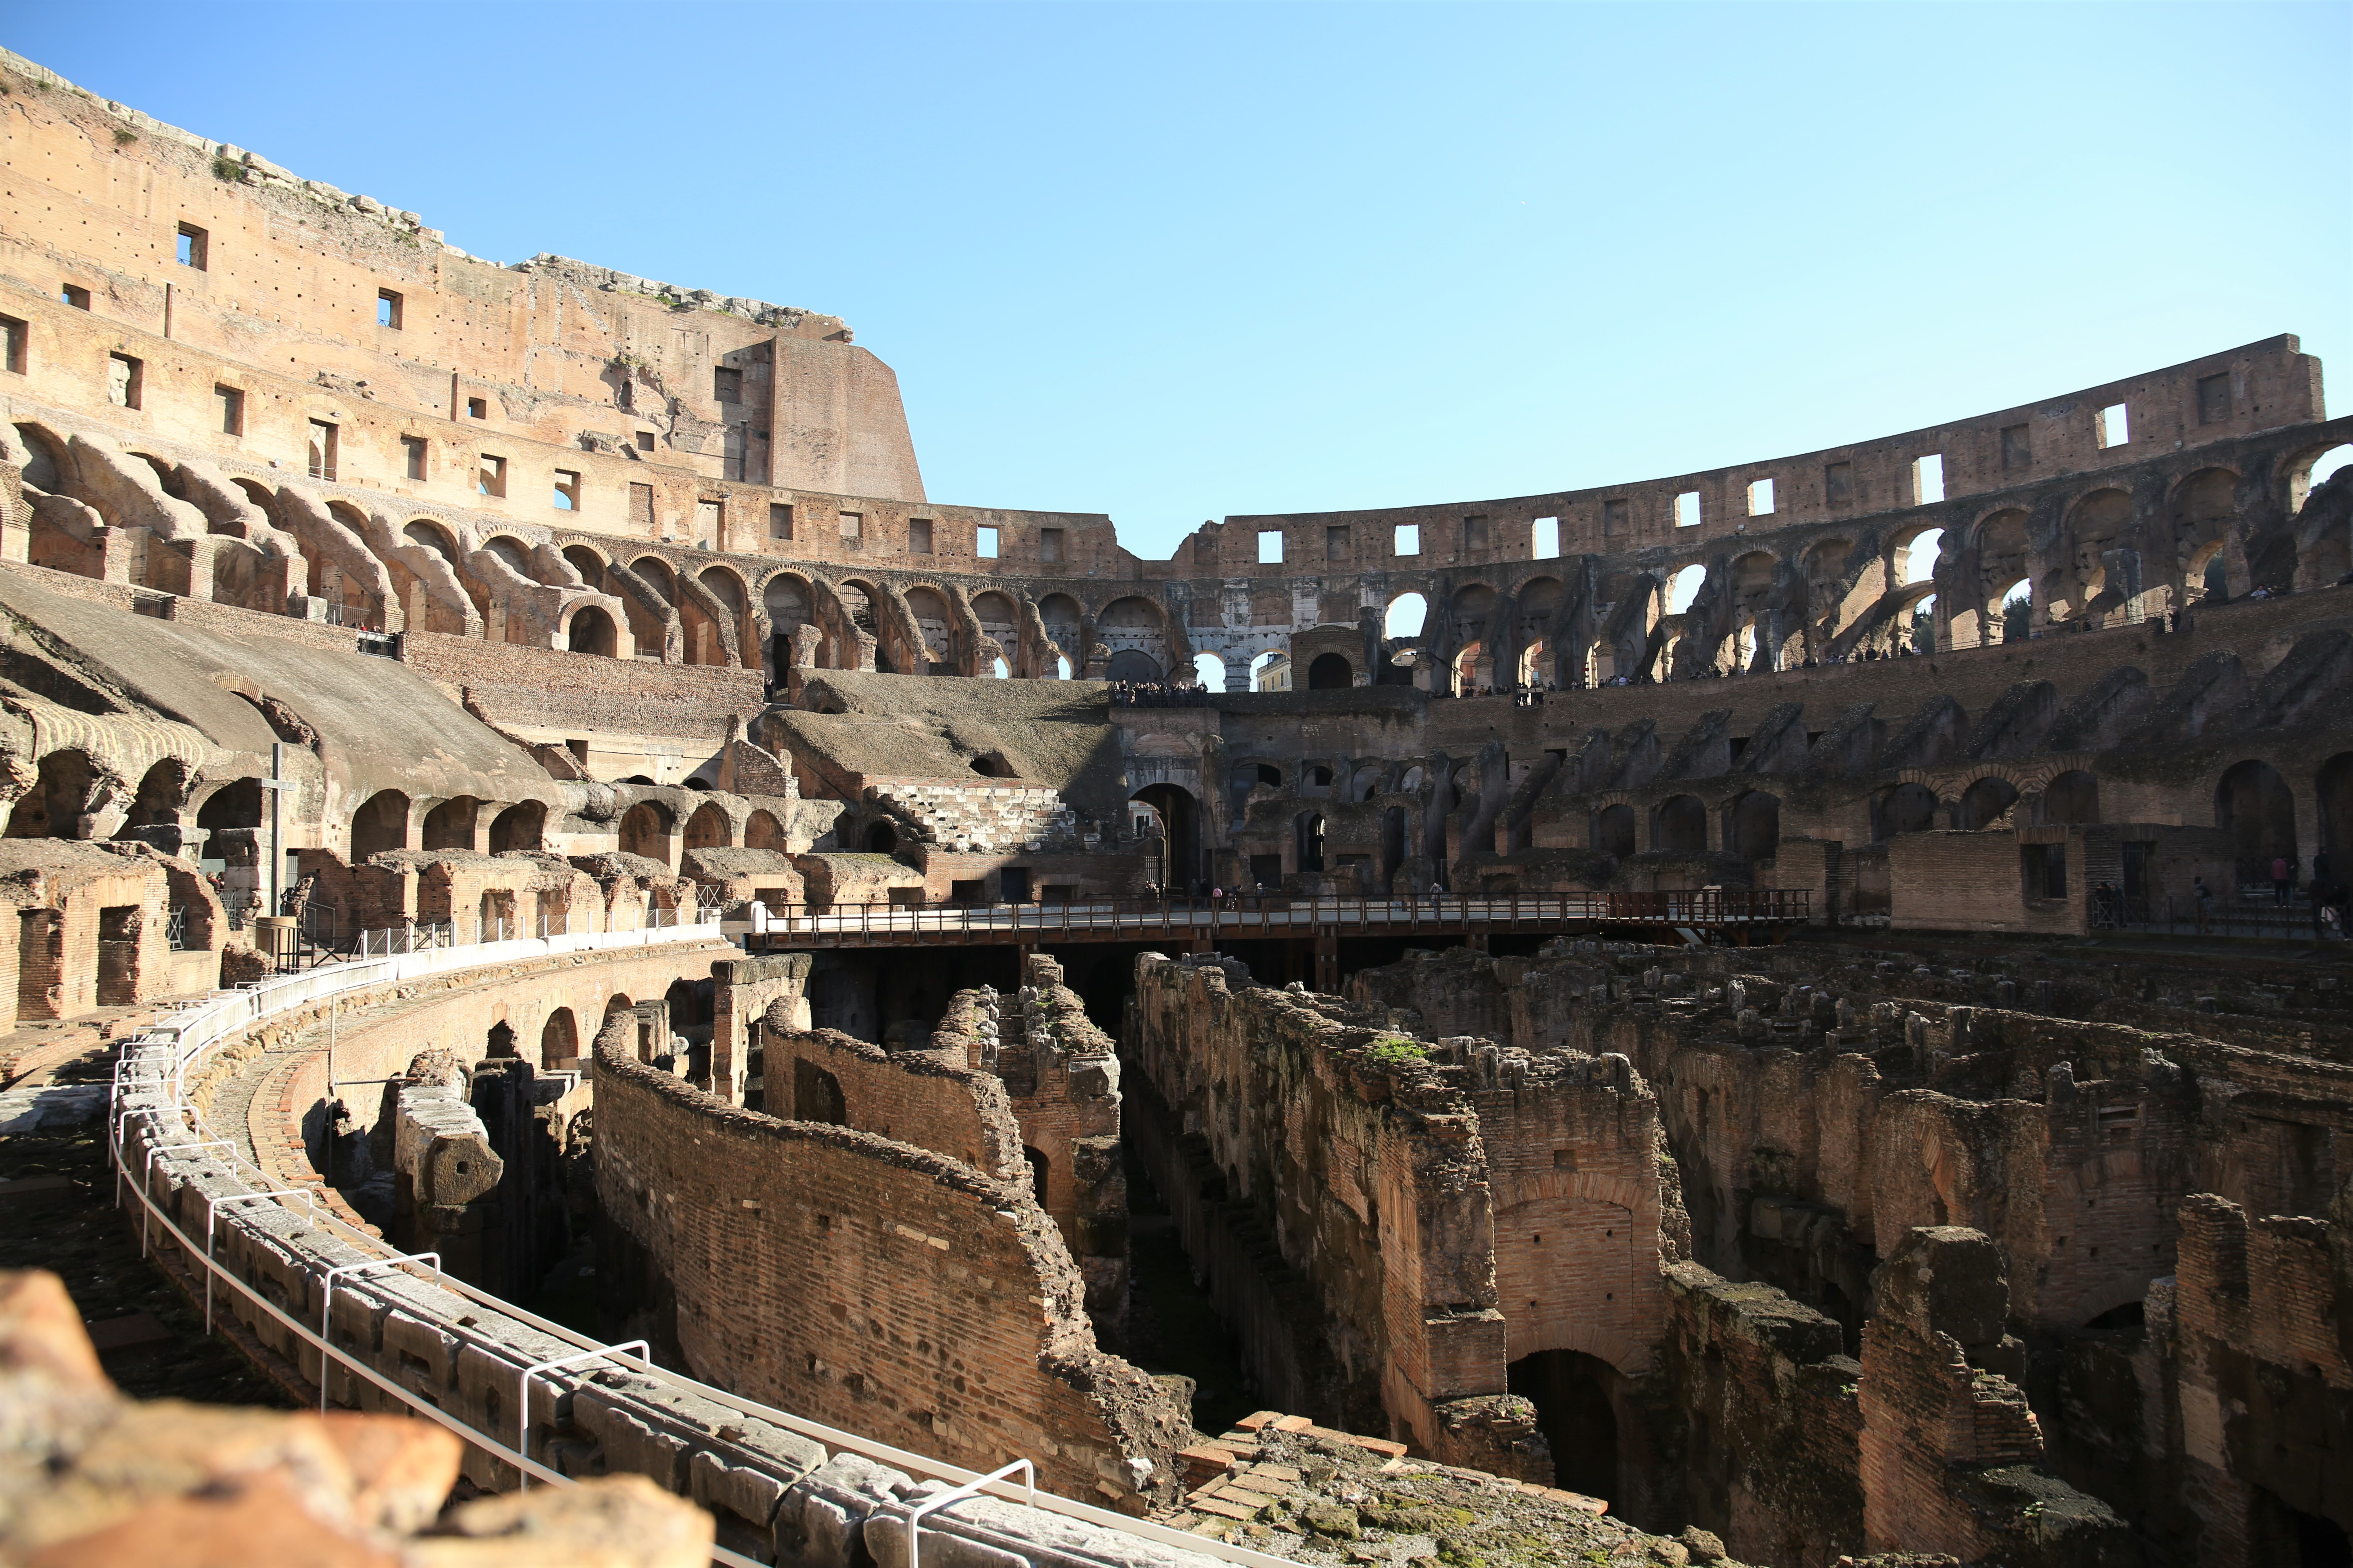 The Colosseum, Roma, Italy, photo by Claire Smith